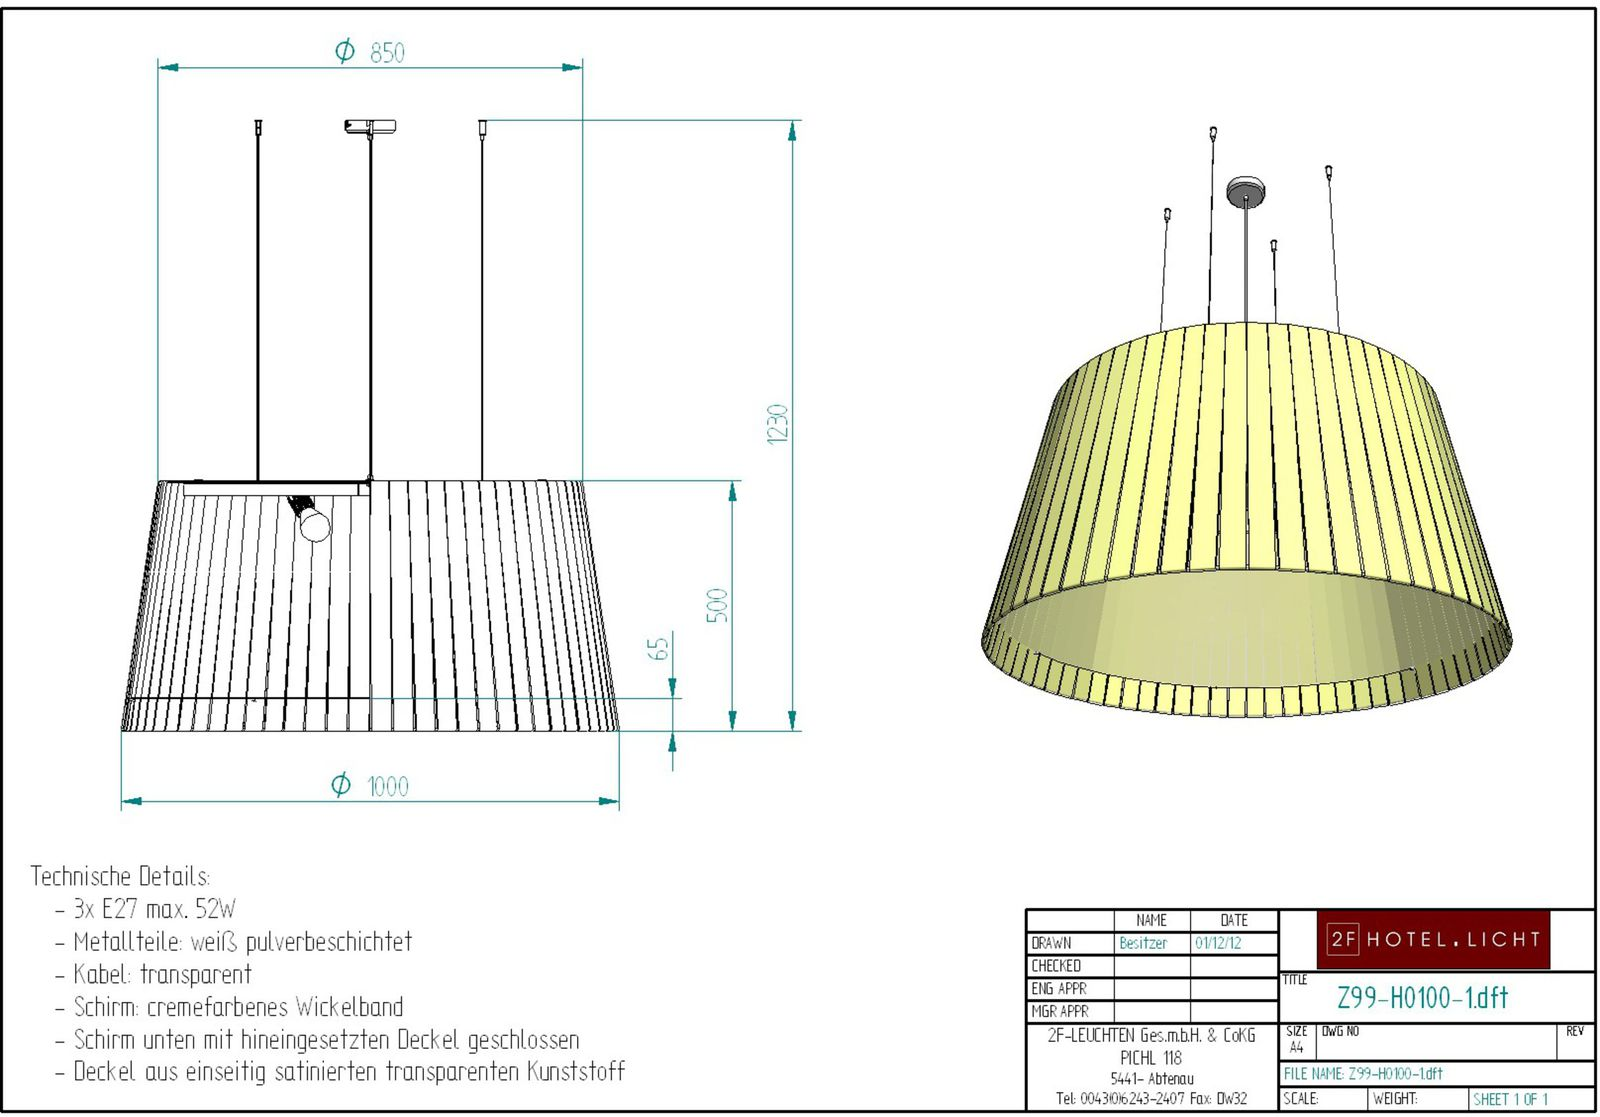 pendant lamp, height complete: 1230mm, shade: height=500mm, diameter: 1000x800mm, techn. details: 3xE27, 52W